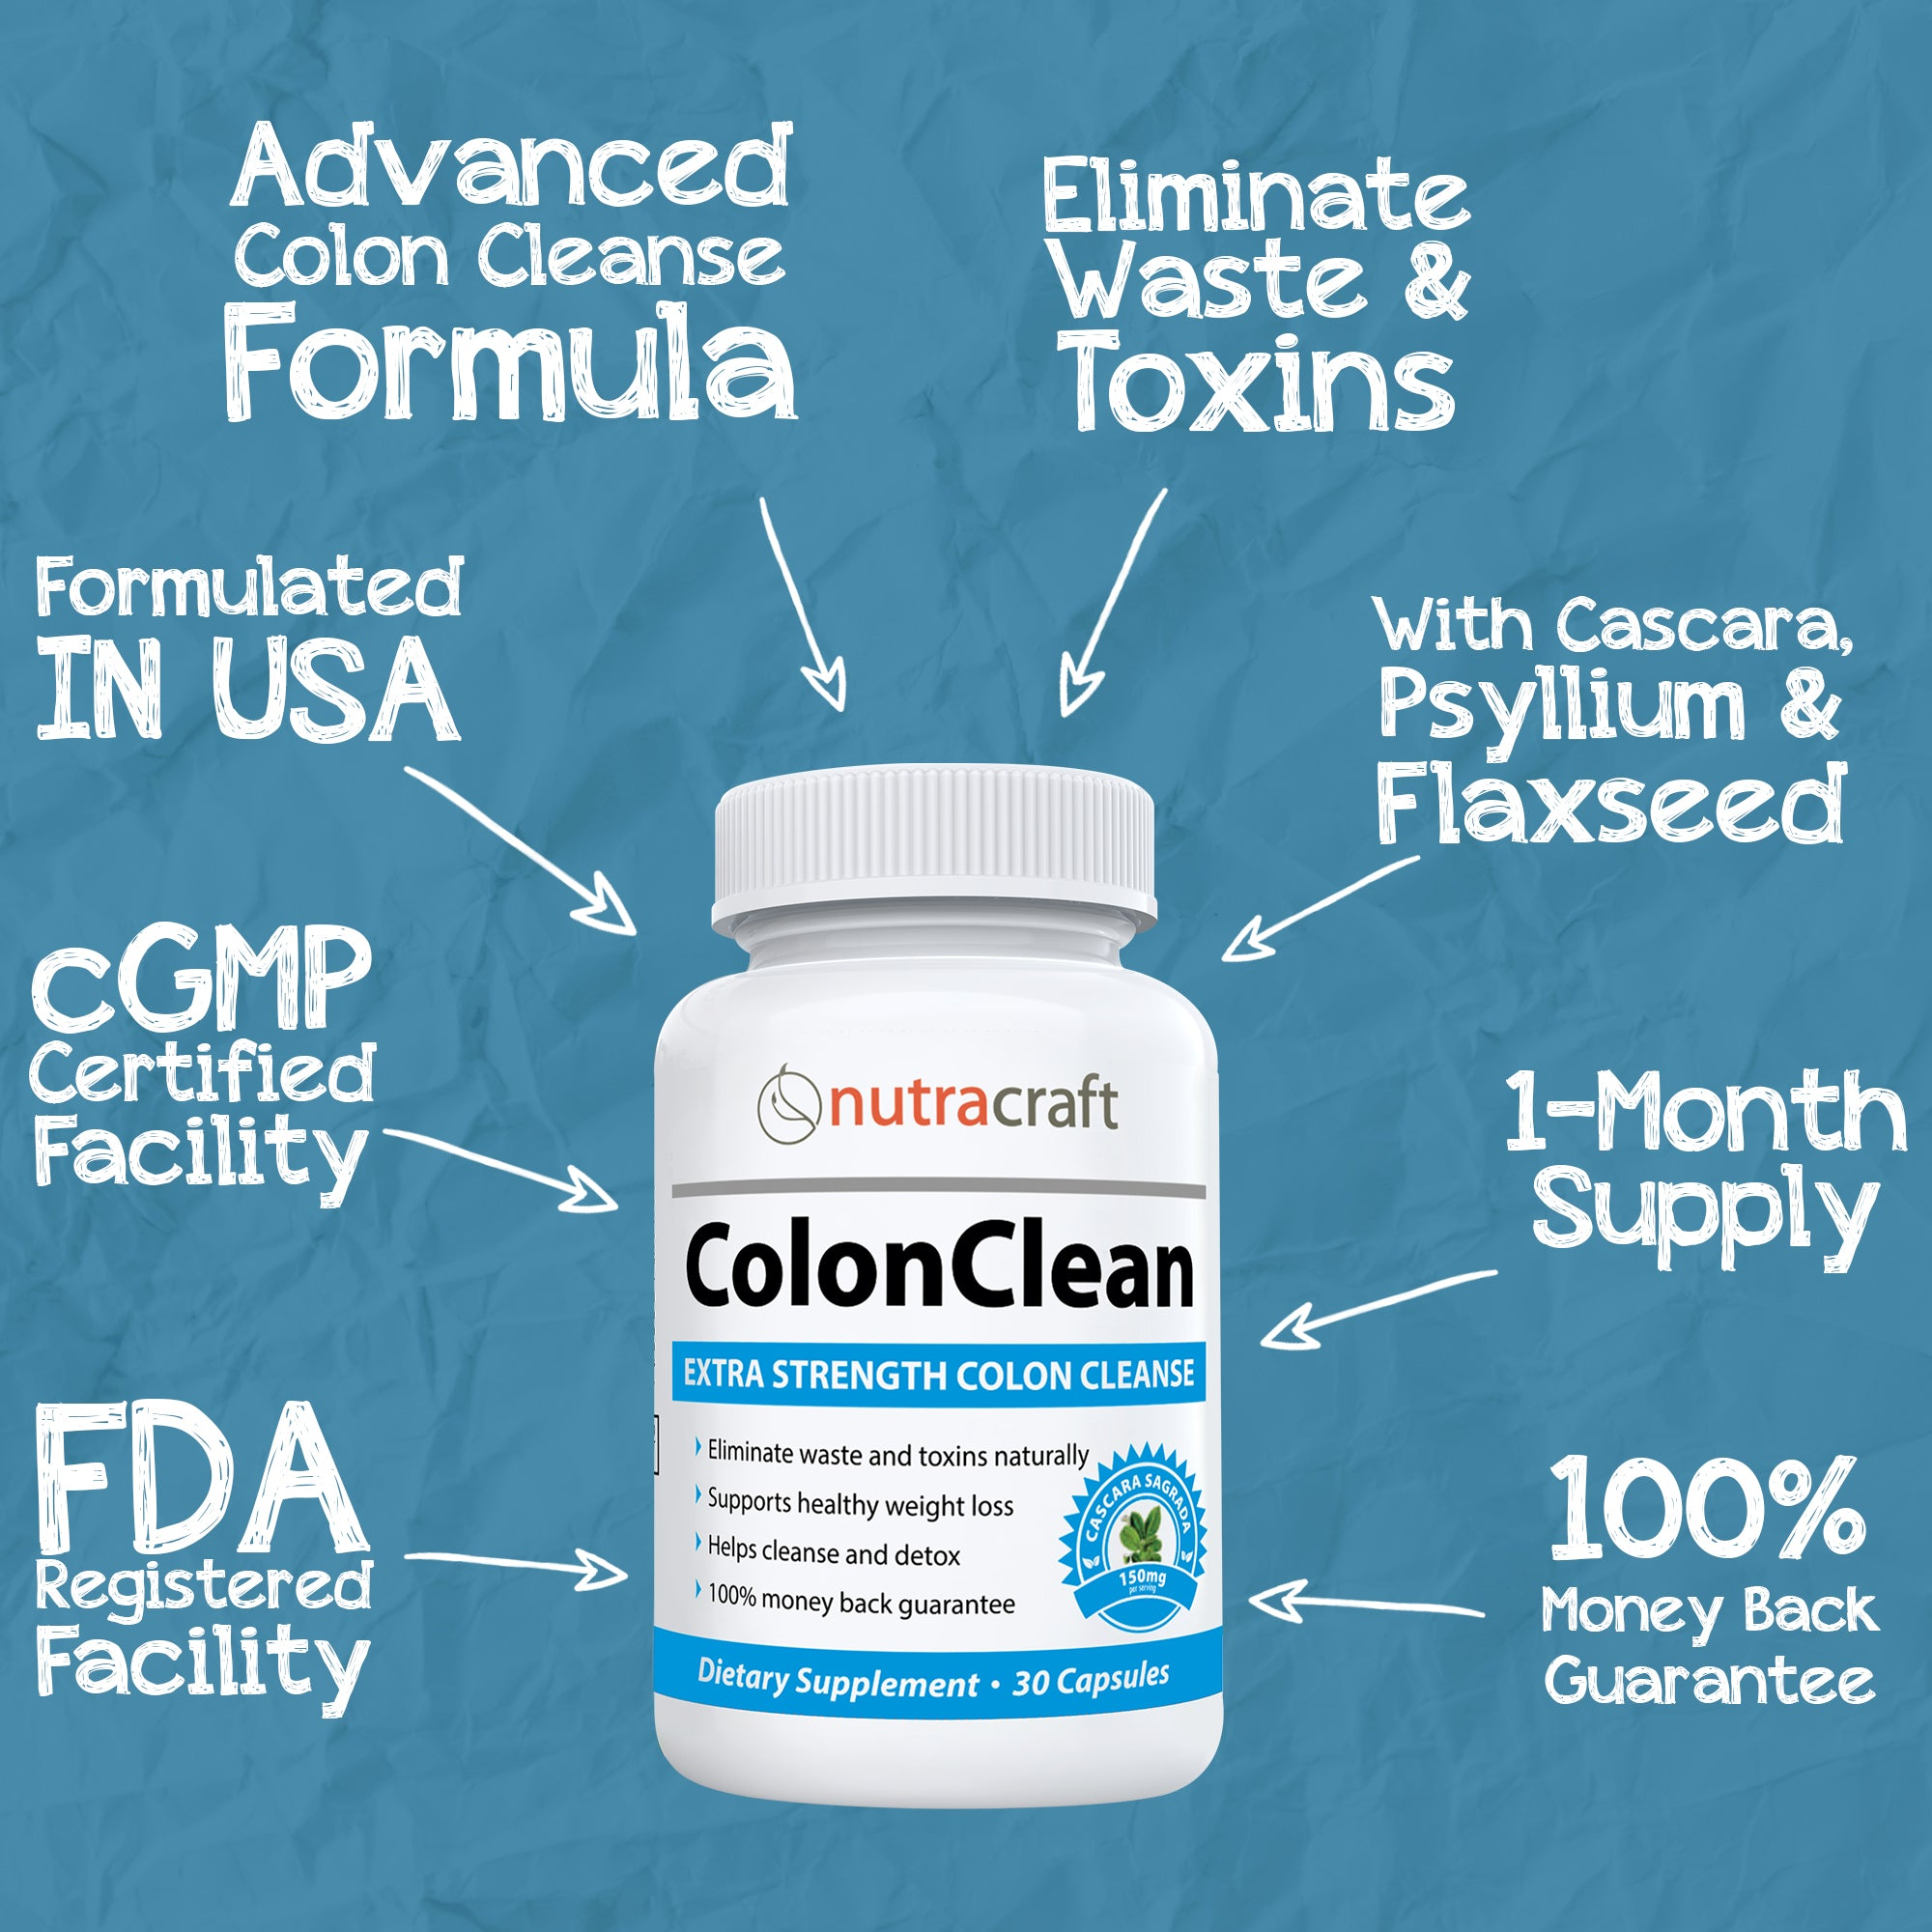 nutracraft-colonclean-seals